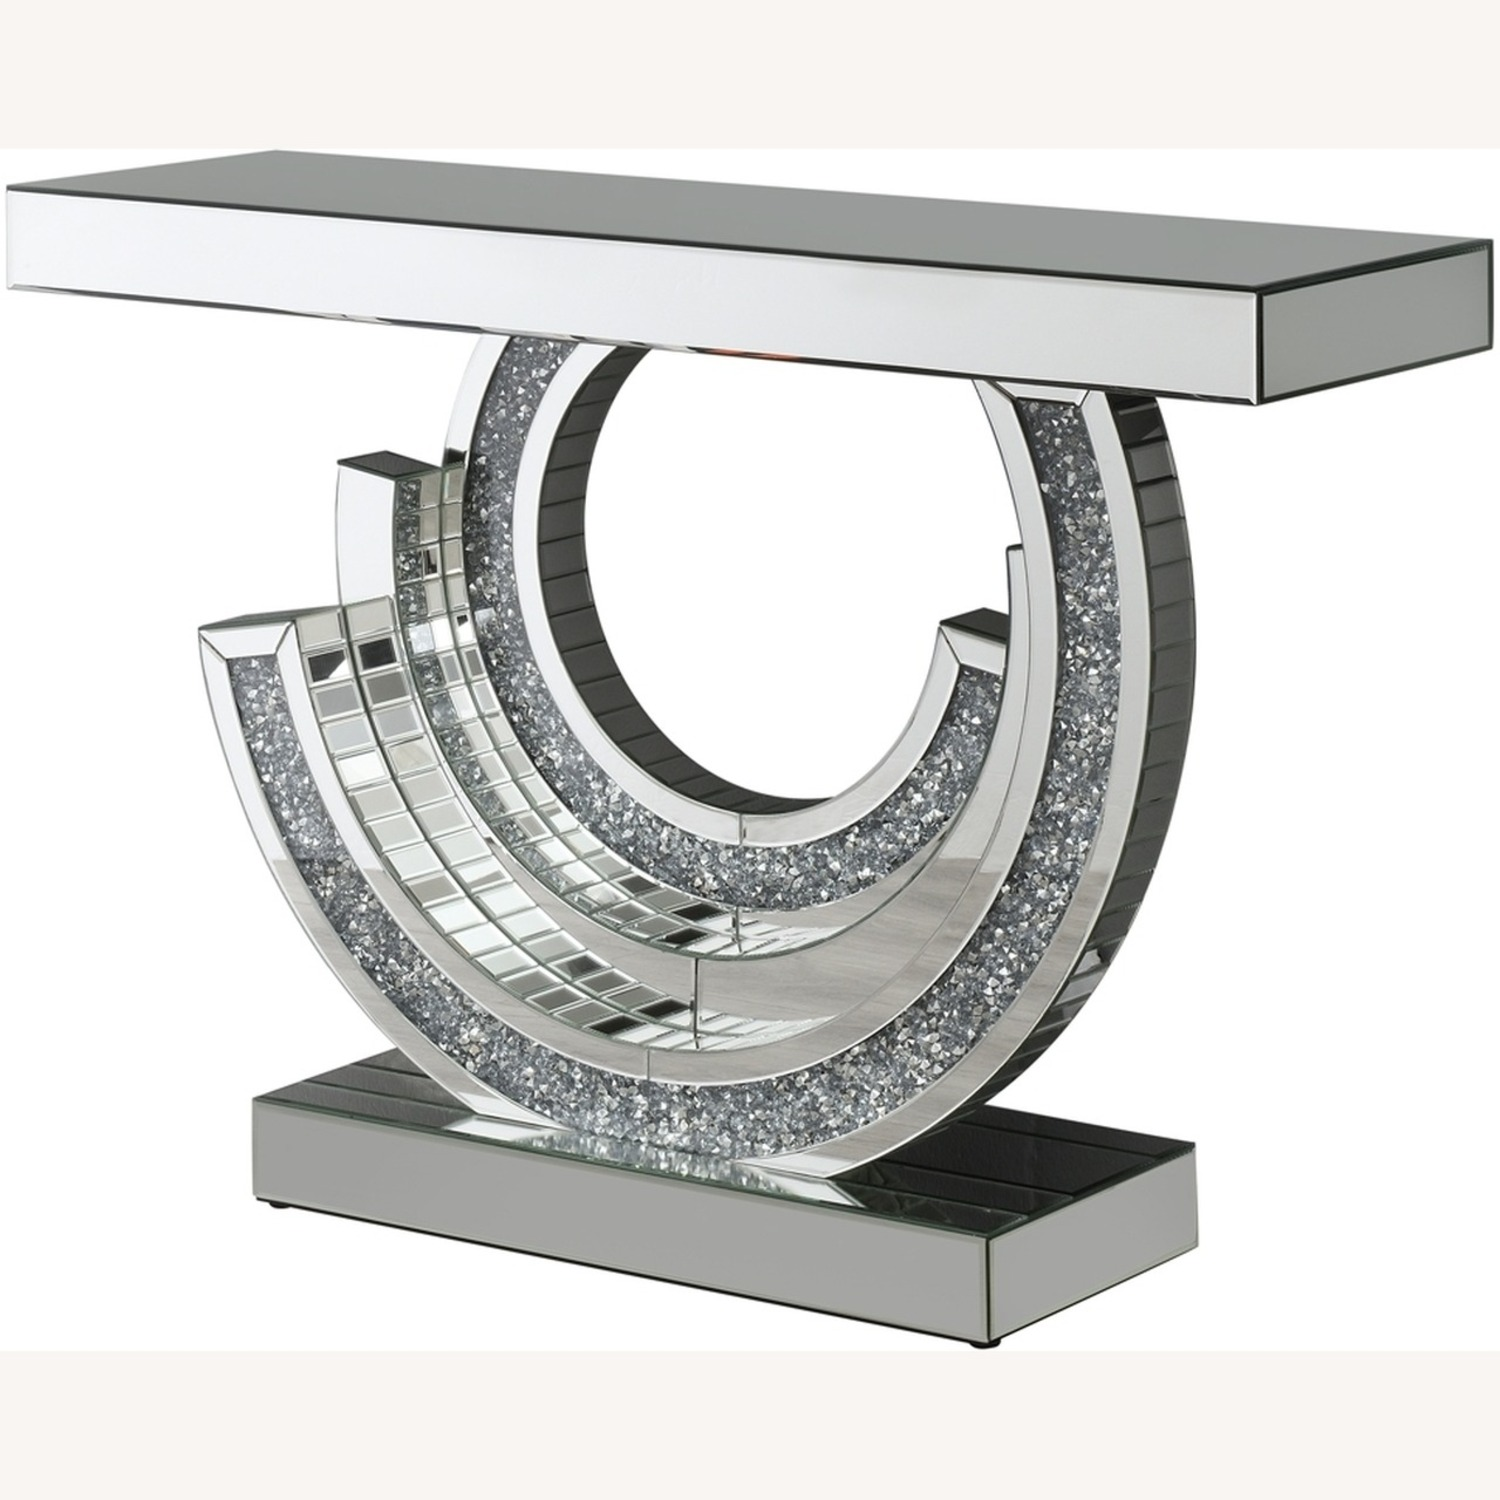 Console Table In Silver W/ Mirrored Table Top - image-1